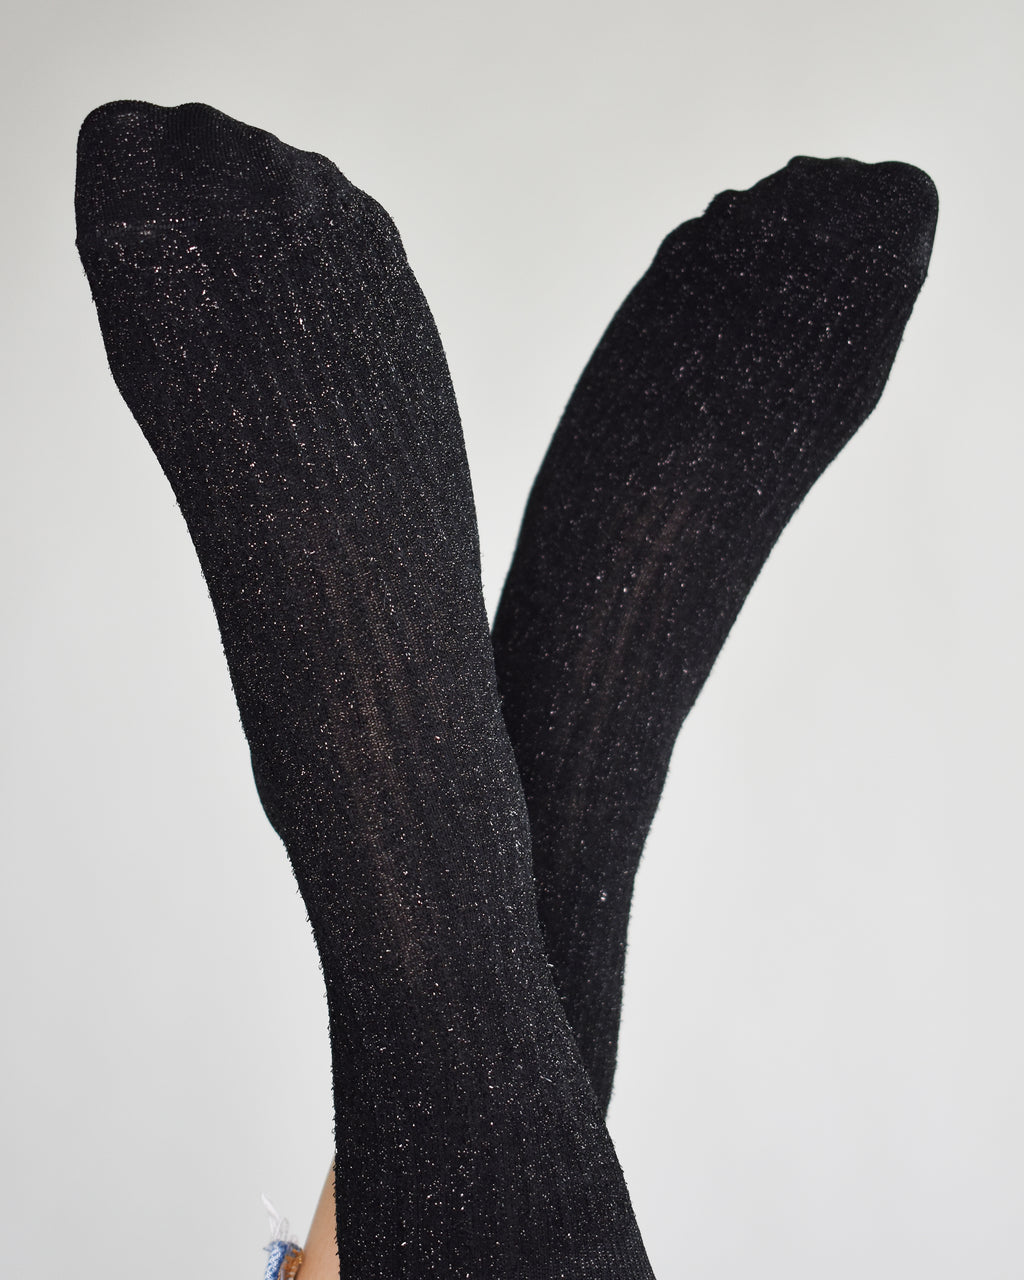 Stella Shimmery Socks - Black